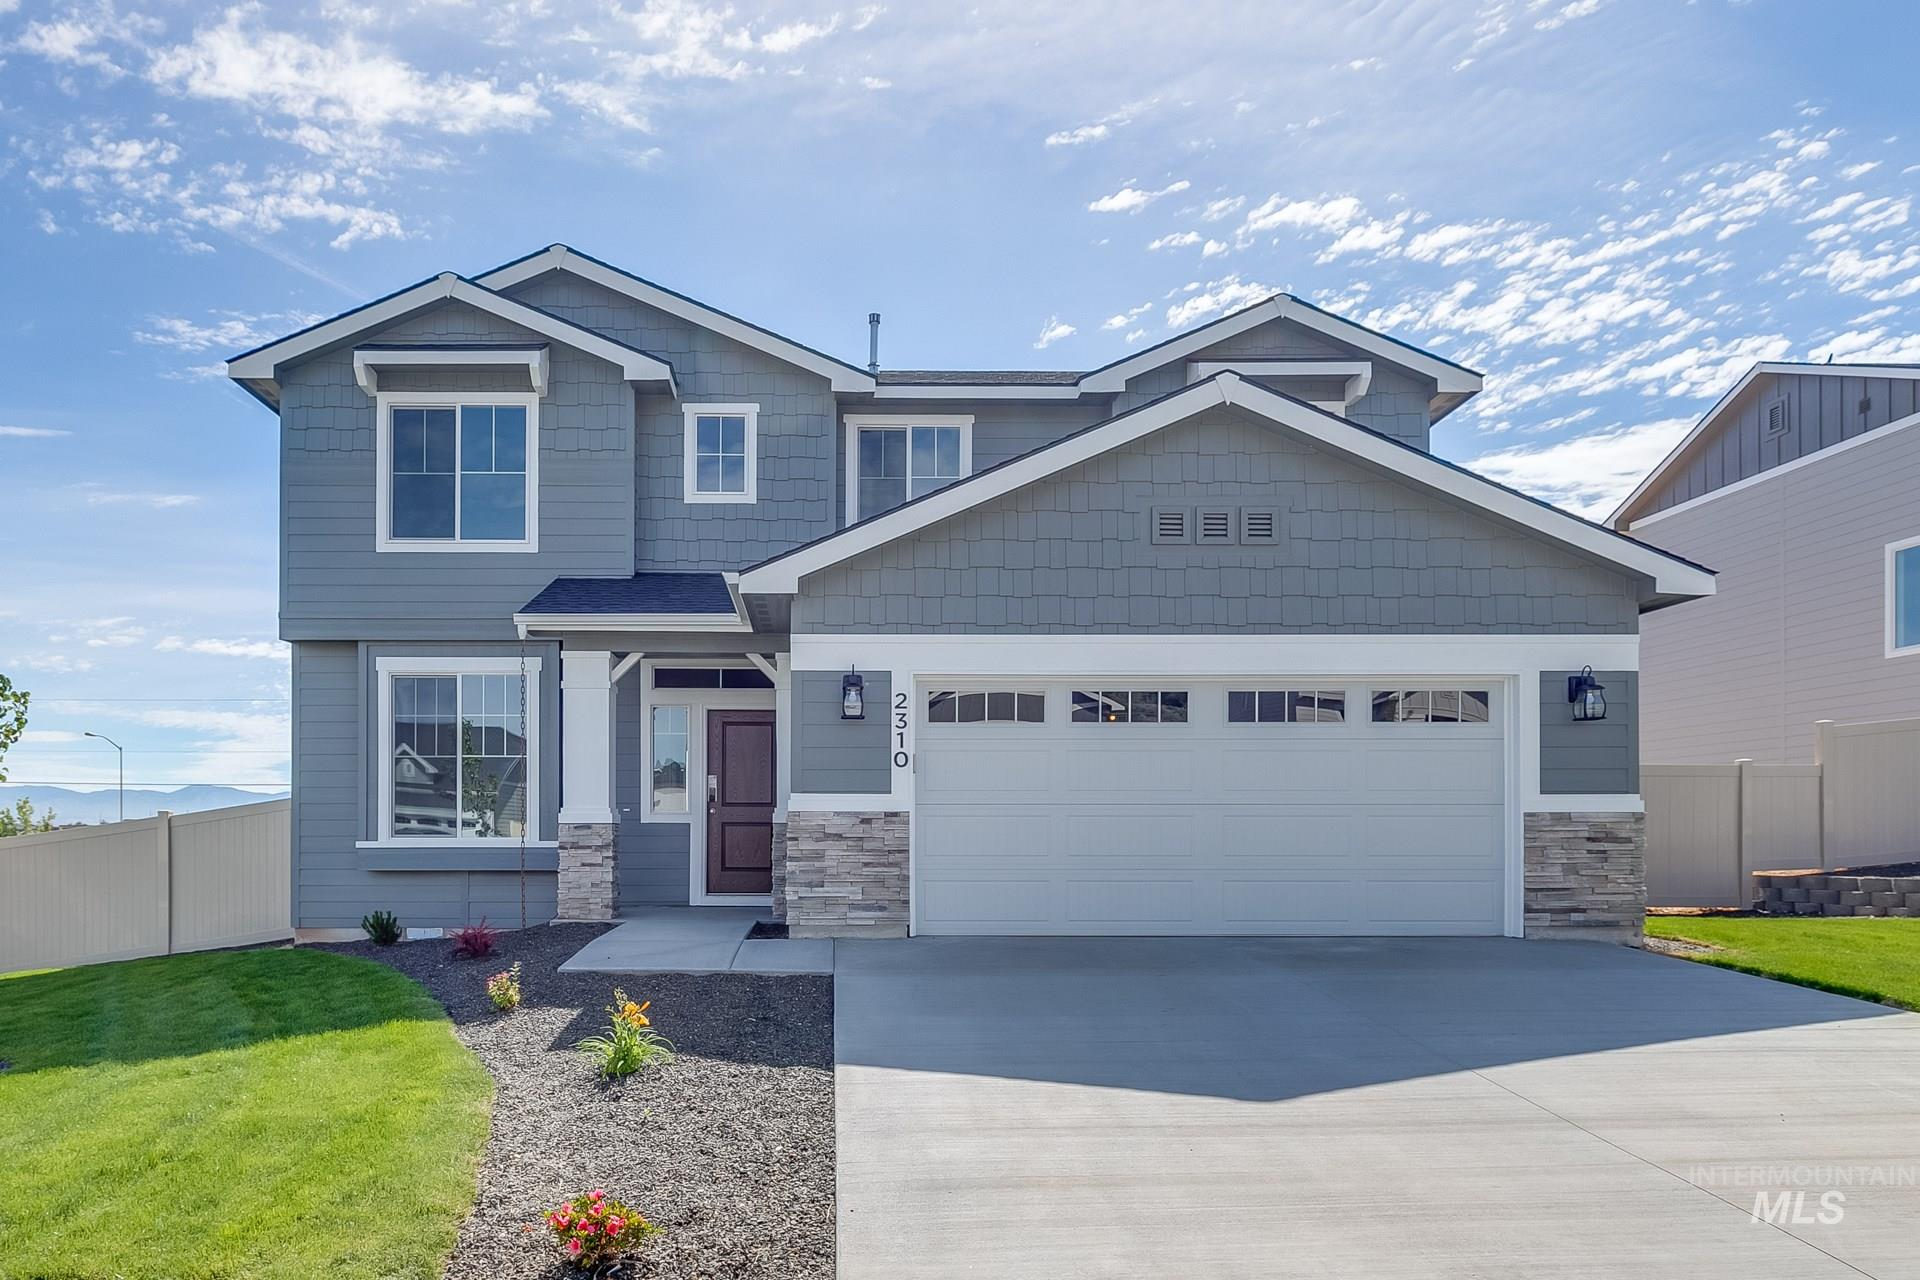 Photo for 234 N Wooddale Ave, Eagle, ID 83616 (MLS # 98772178)